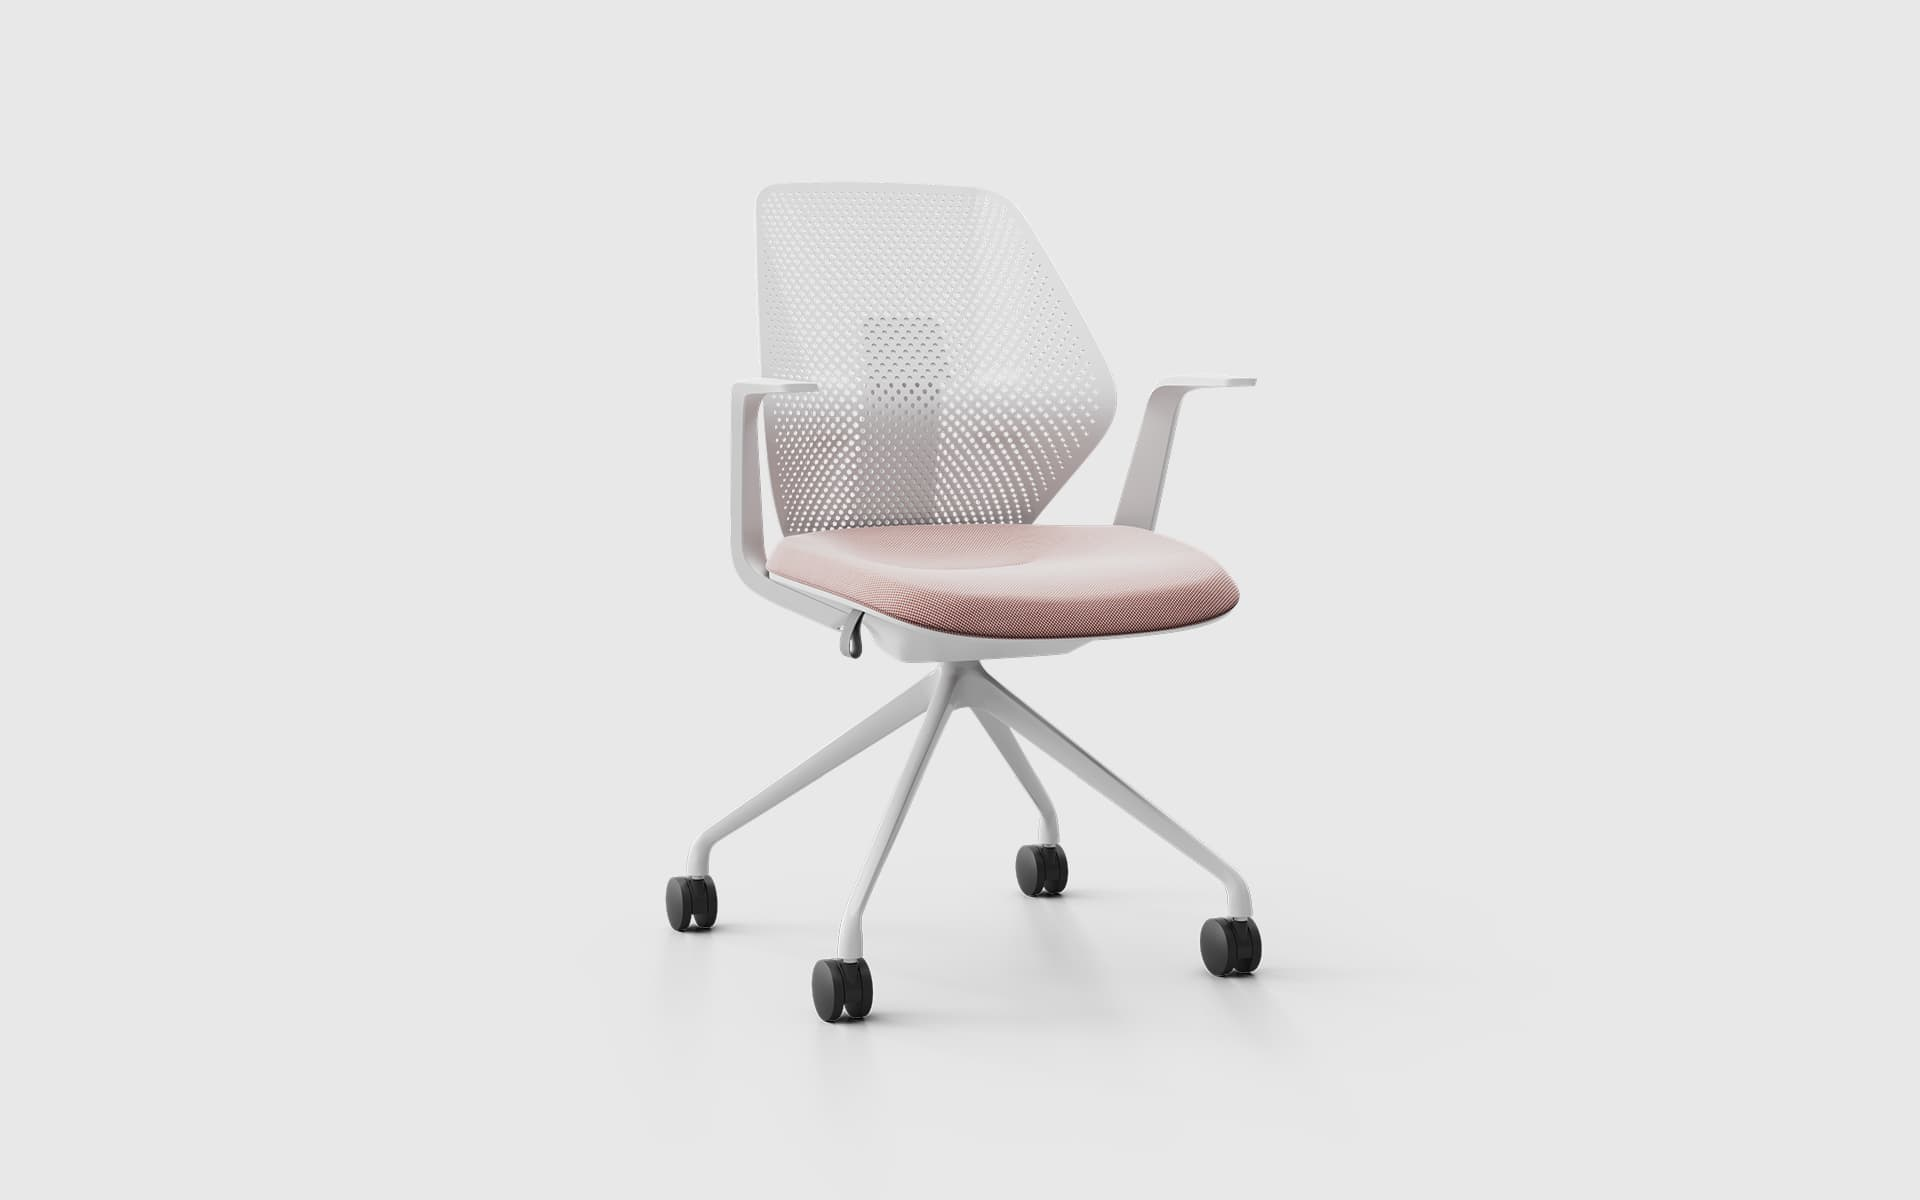 Close-up of the ITOKI QuA office chair by ITO Design